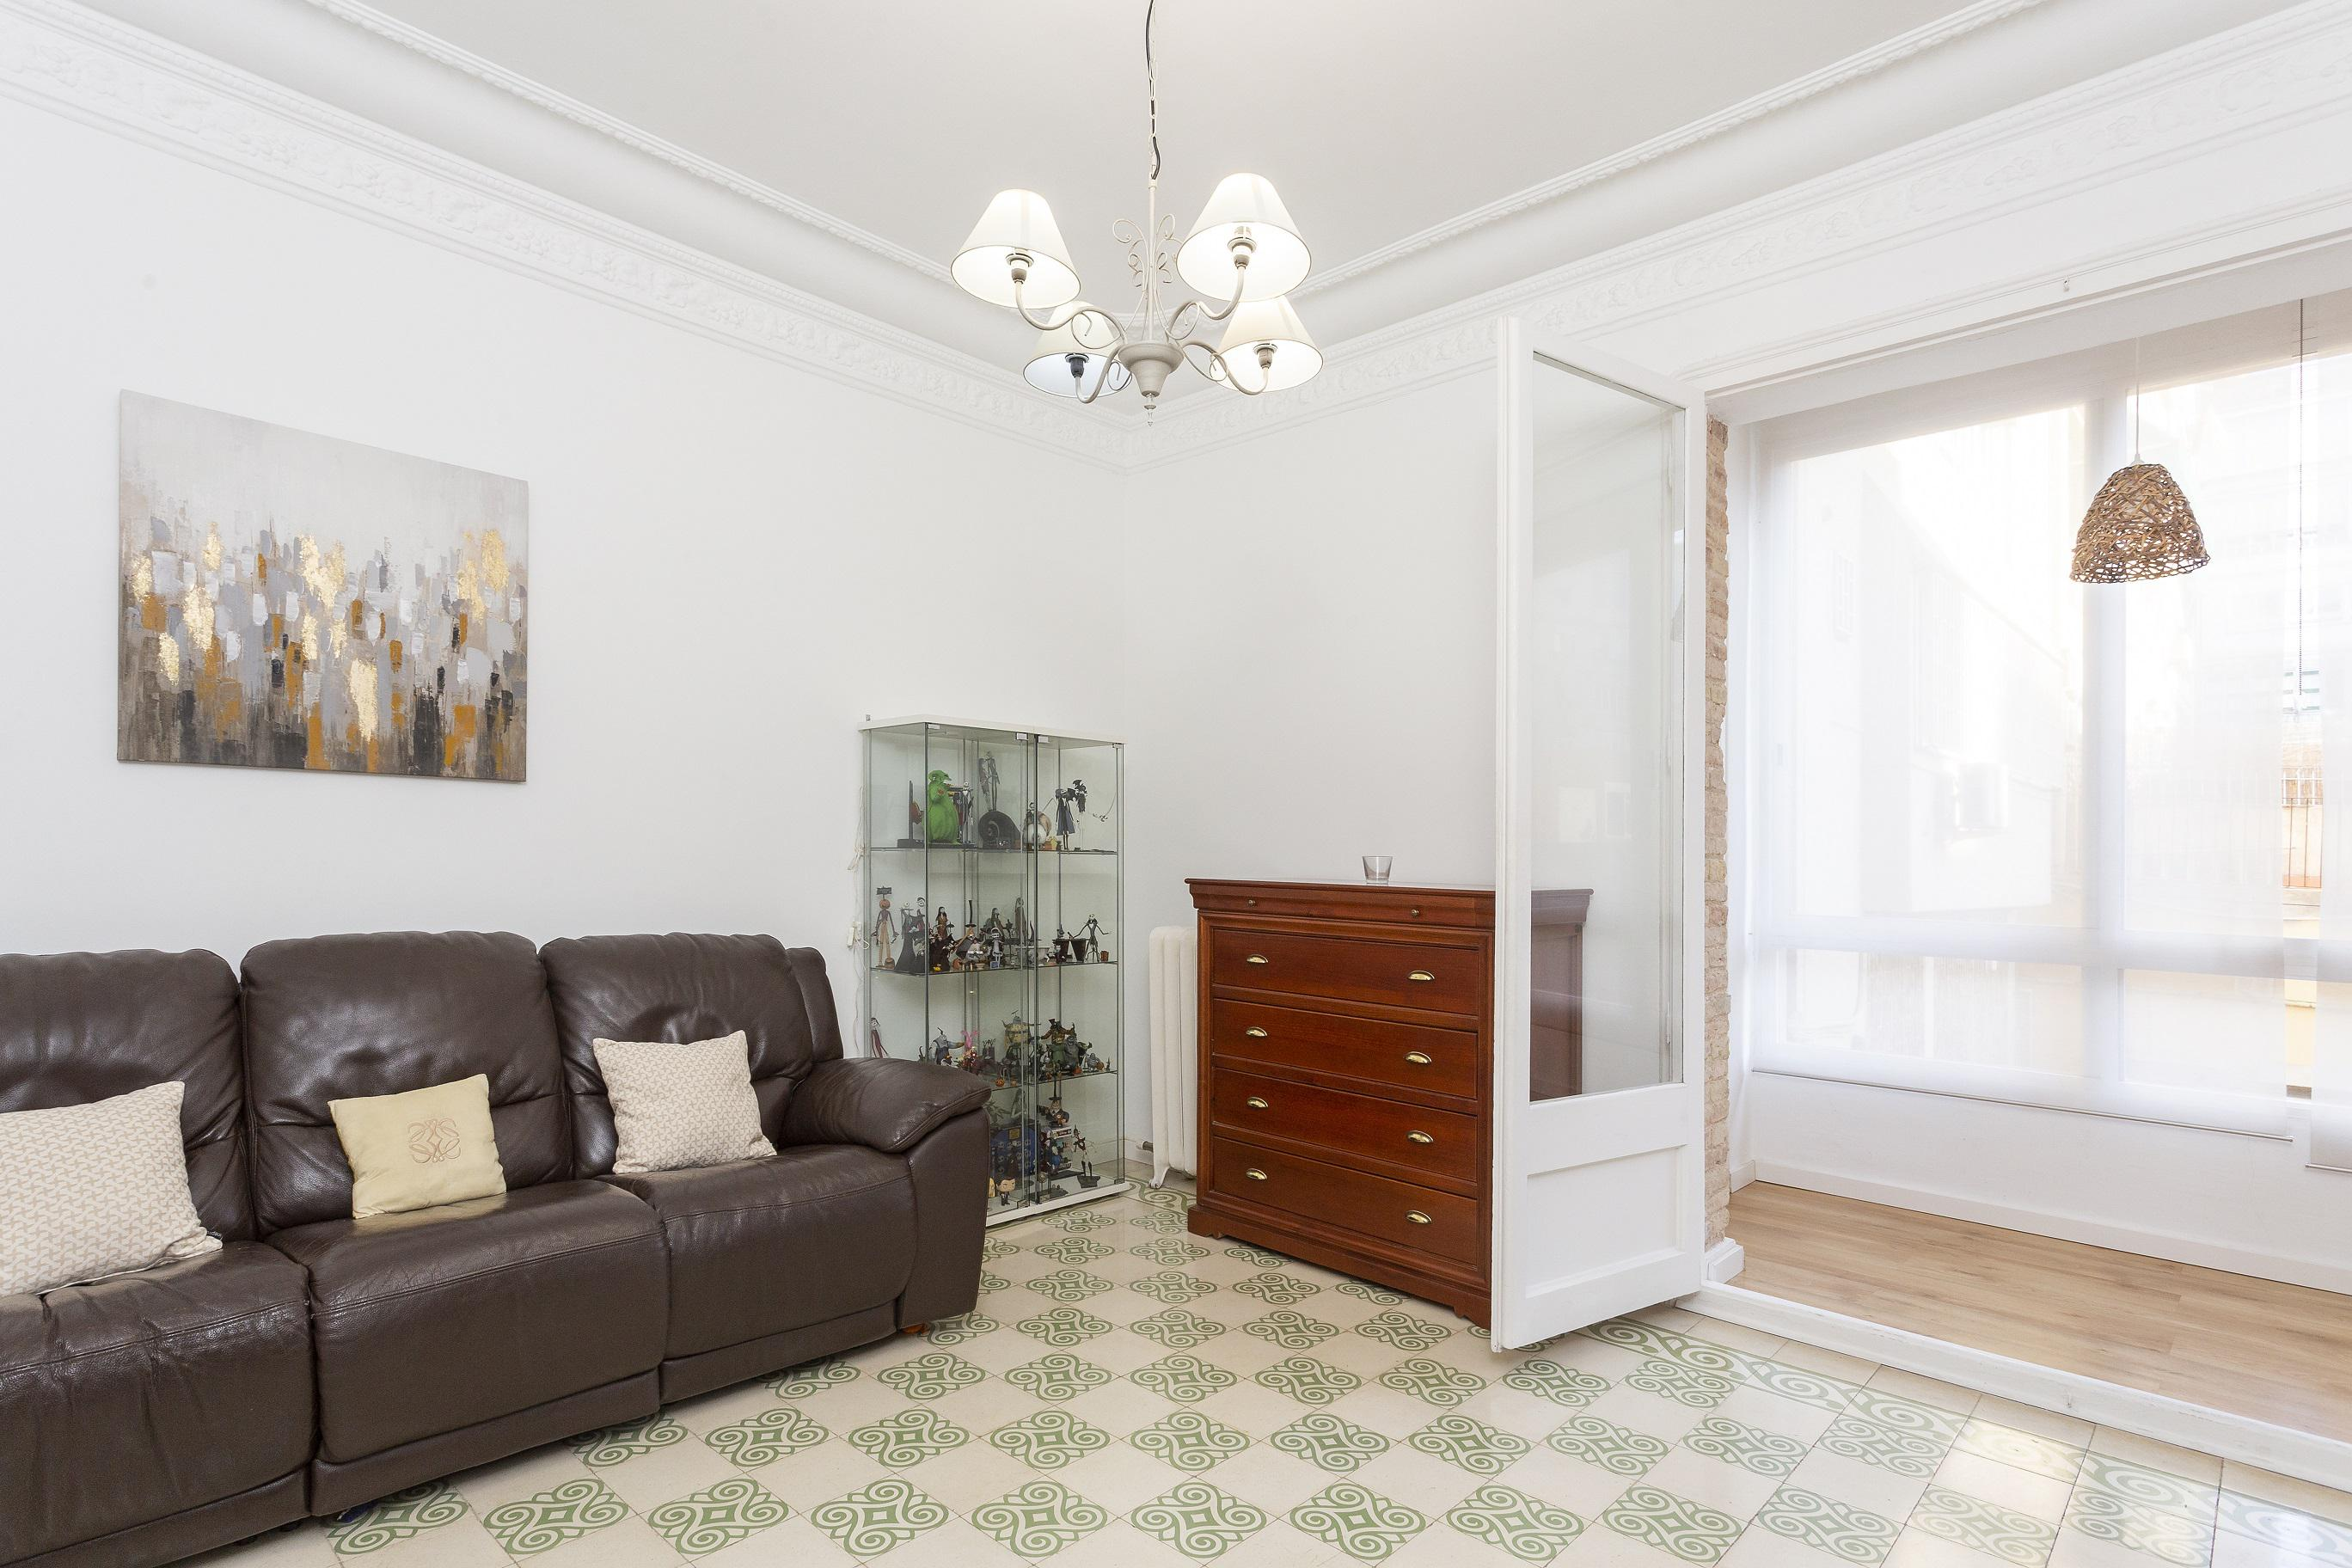 236190 Apartment for sale in Eixample, Old Left Eixample 5